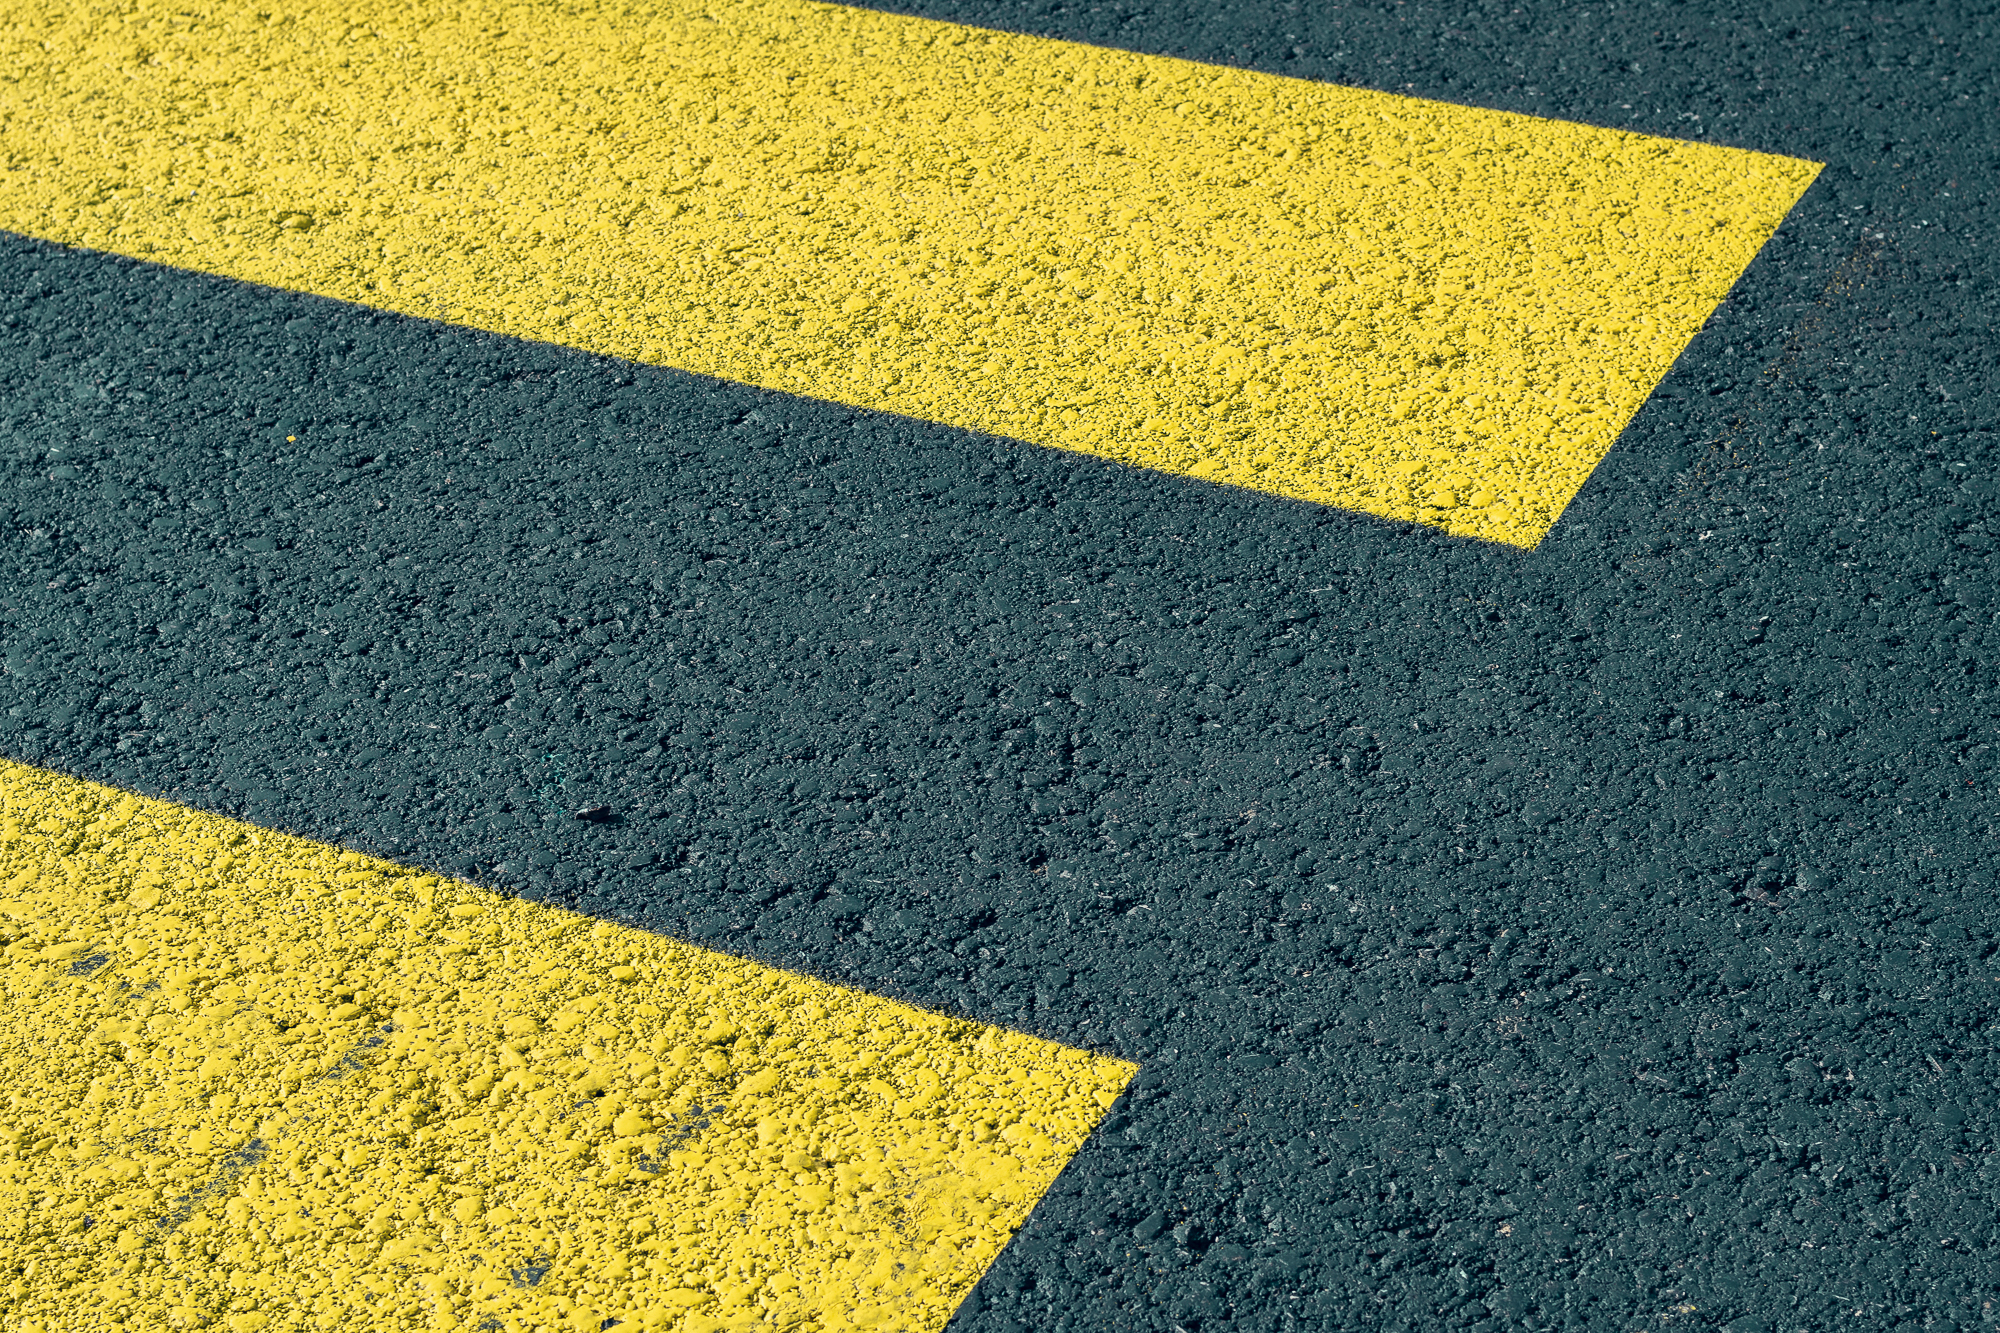 yellow_marks_on_street_adobestock_388763555.jpg